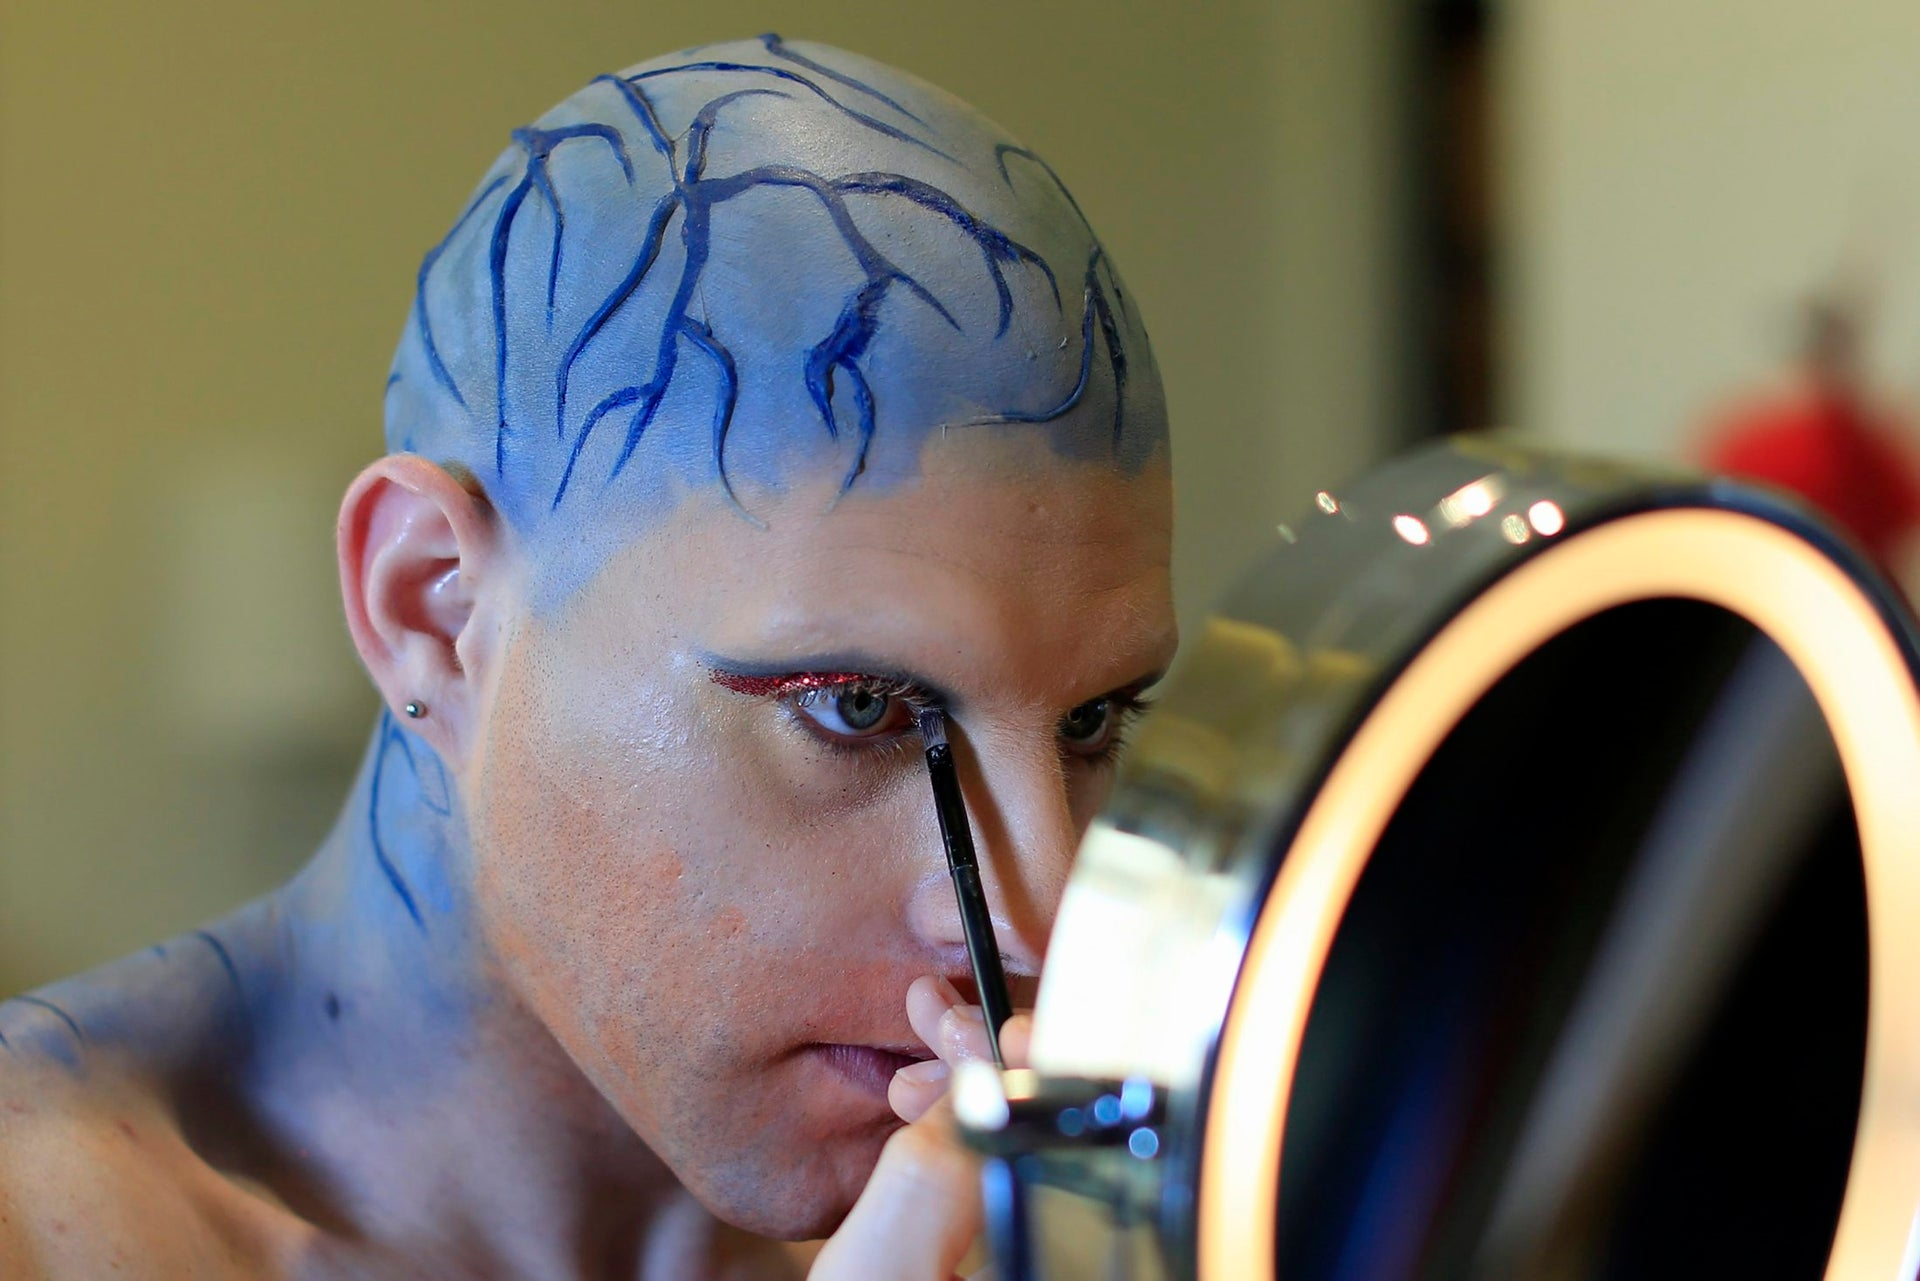 In this picture taken Sunday, May 13, 2018, Elias, 24, who goes by the stage name of Melanie Coxxx, applies make-up before performing in a Sunday drag queen show, called the drag ball, during Beirut Pride week at his home in Tabarja, Lebanon.  Lebanonג€™s relative tolerance emerges in part from its sectarian and ethnic diversity. Despite tensions, no one group is strong enough to impose its will, and people are forced to recognize others to a degree. That has opened up a greater freedom of press, expression and activism than elsewhere in the region.